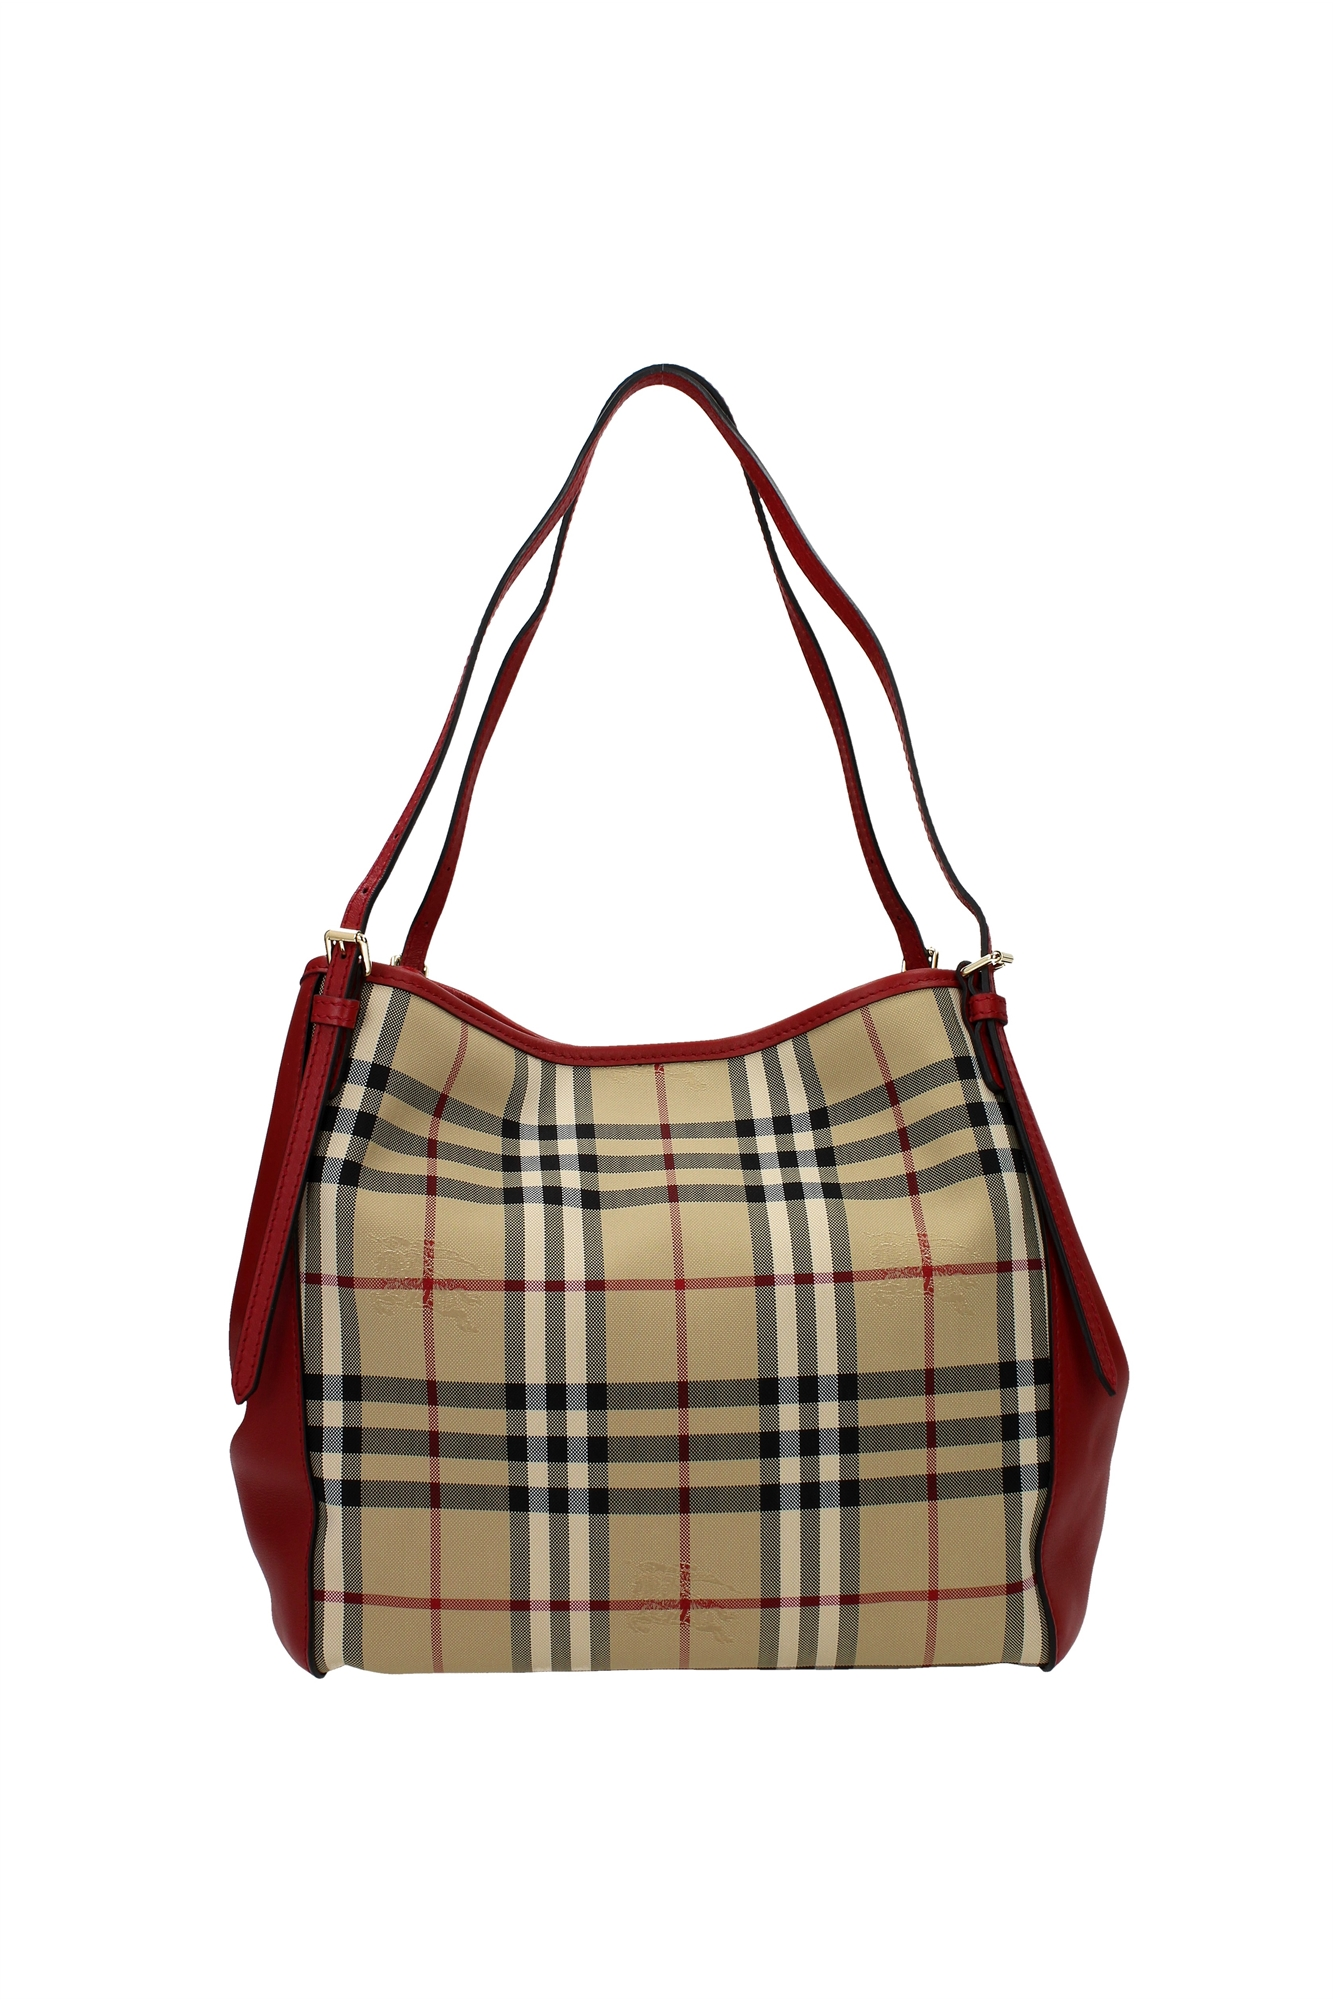 Shoulder Bags Burberry Women Polyamide Red 3939898 | eBay